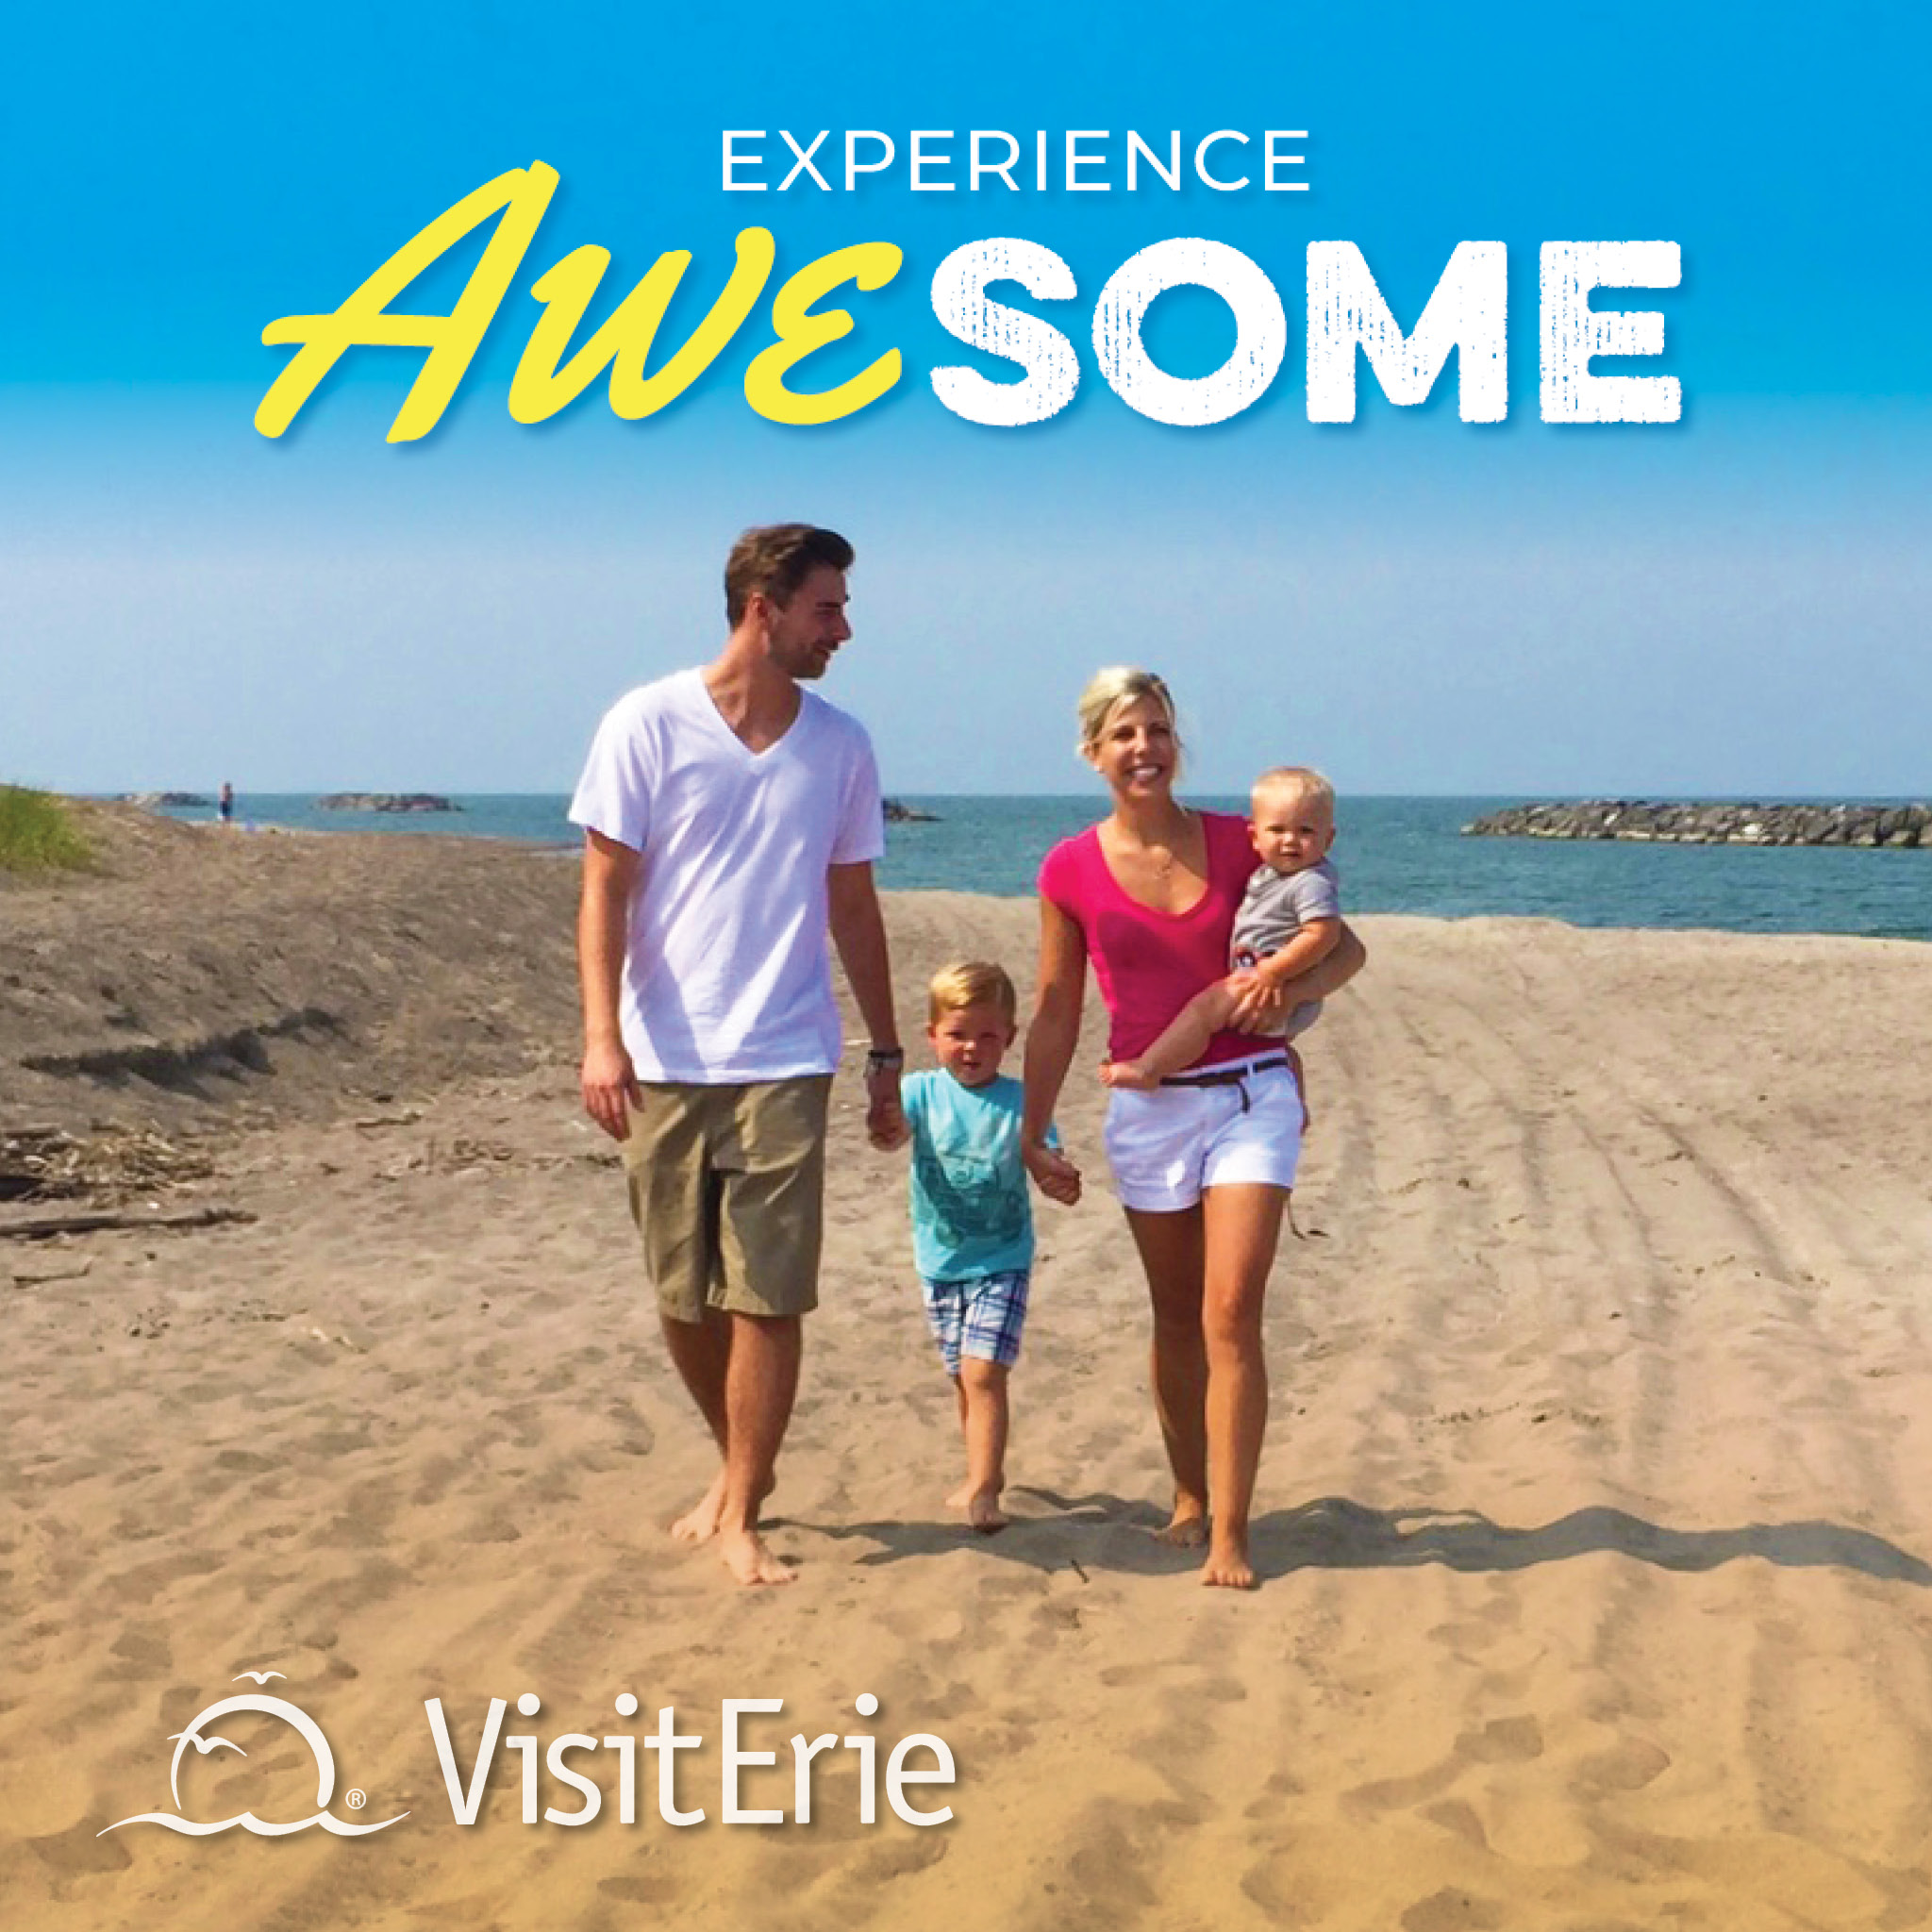 Experience Awesome Instagram 2019 9